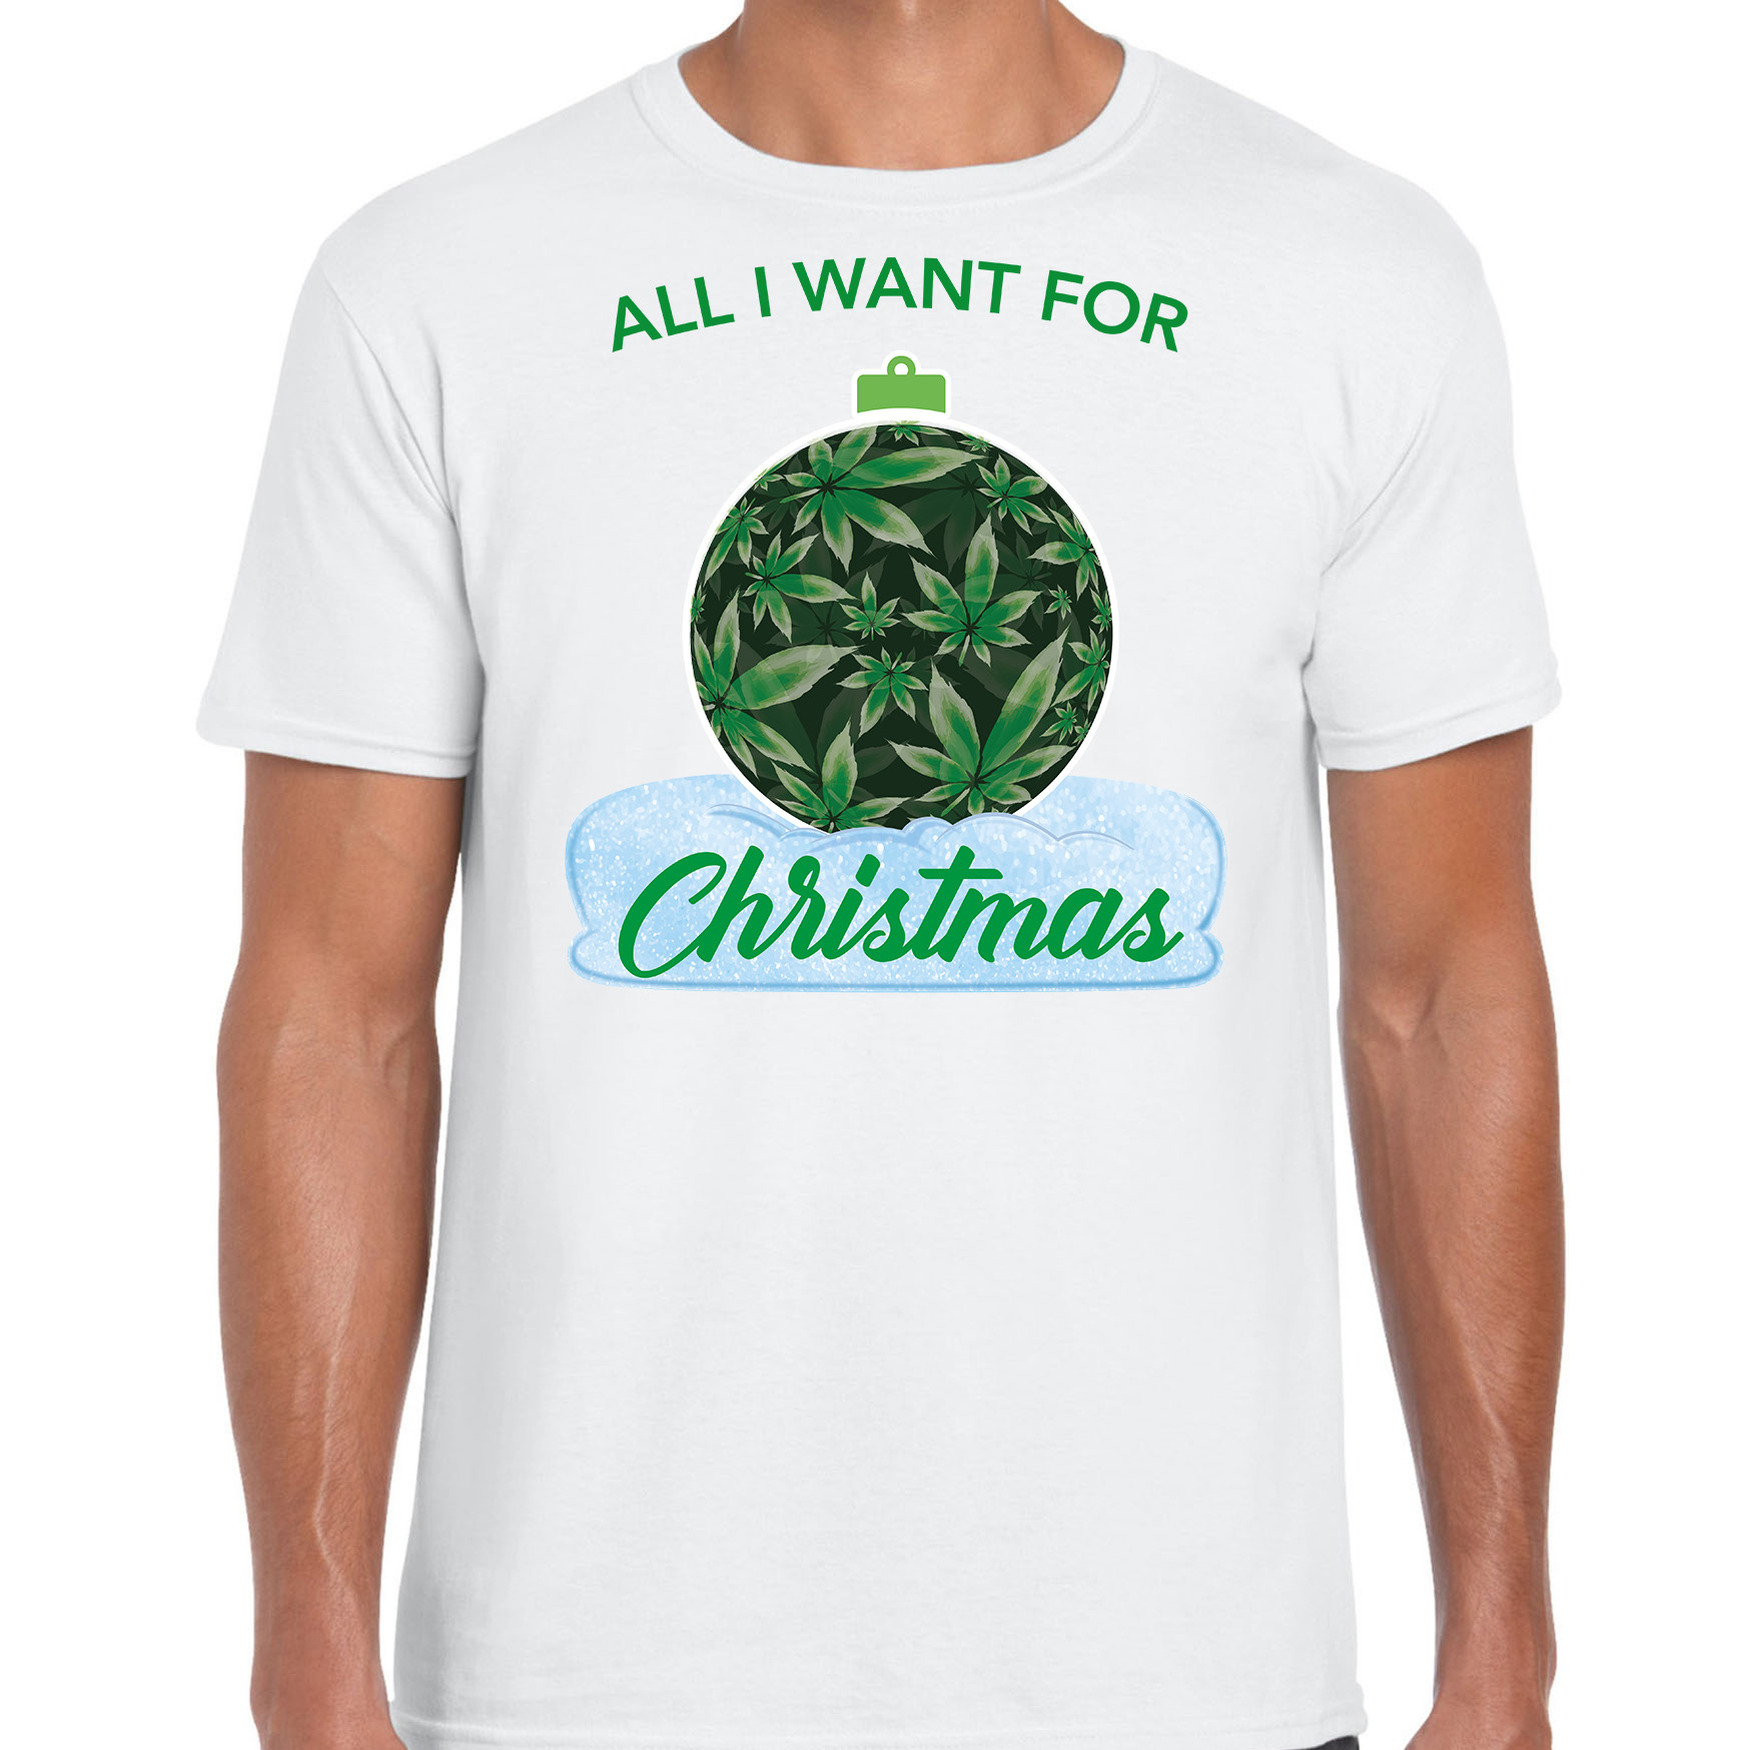 Wiet kerstbal shirt / kerst t-shirt all i want for christmas wit voor heren